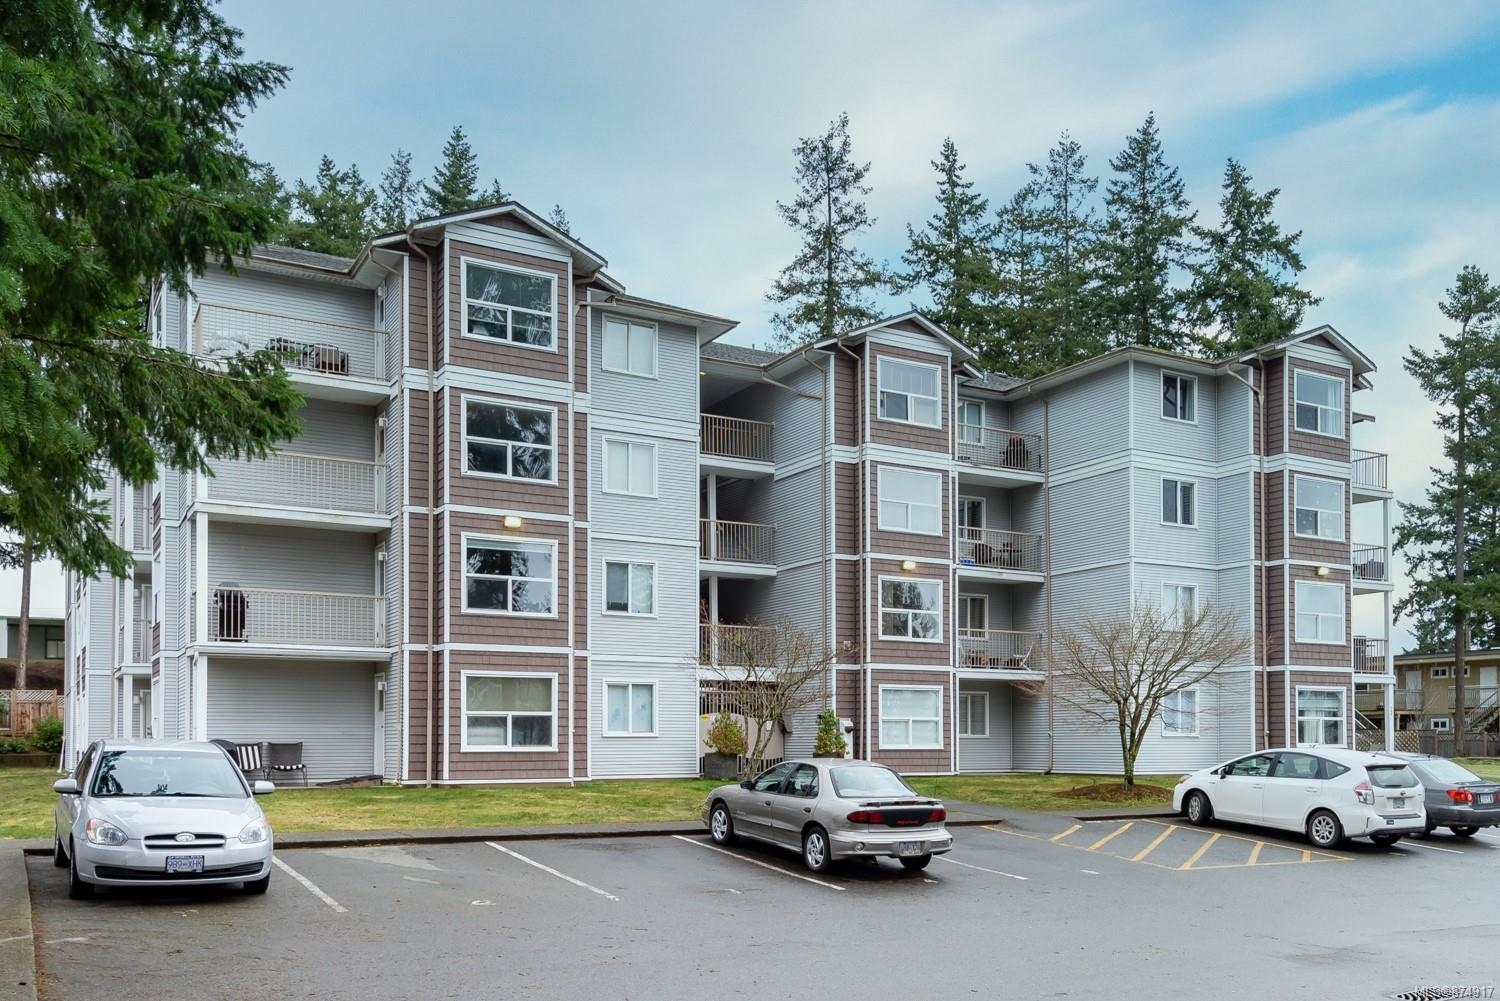 202 - 282 Birch Street, Campbell River Central, Campbell River photo number 2